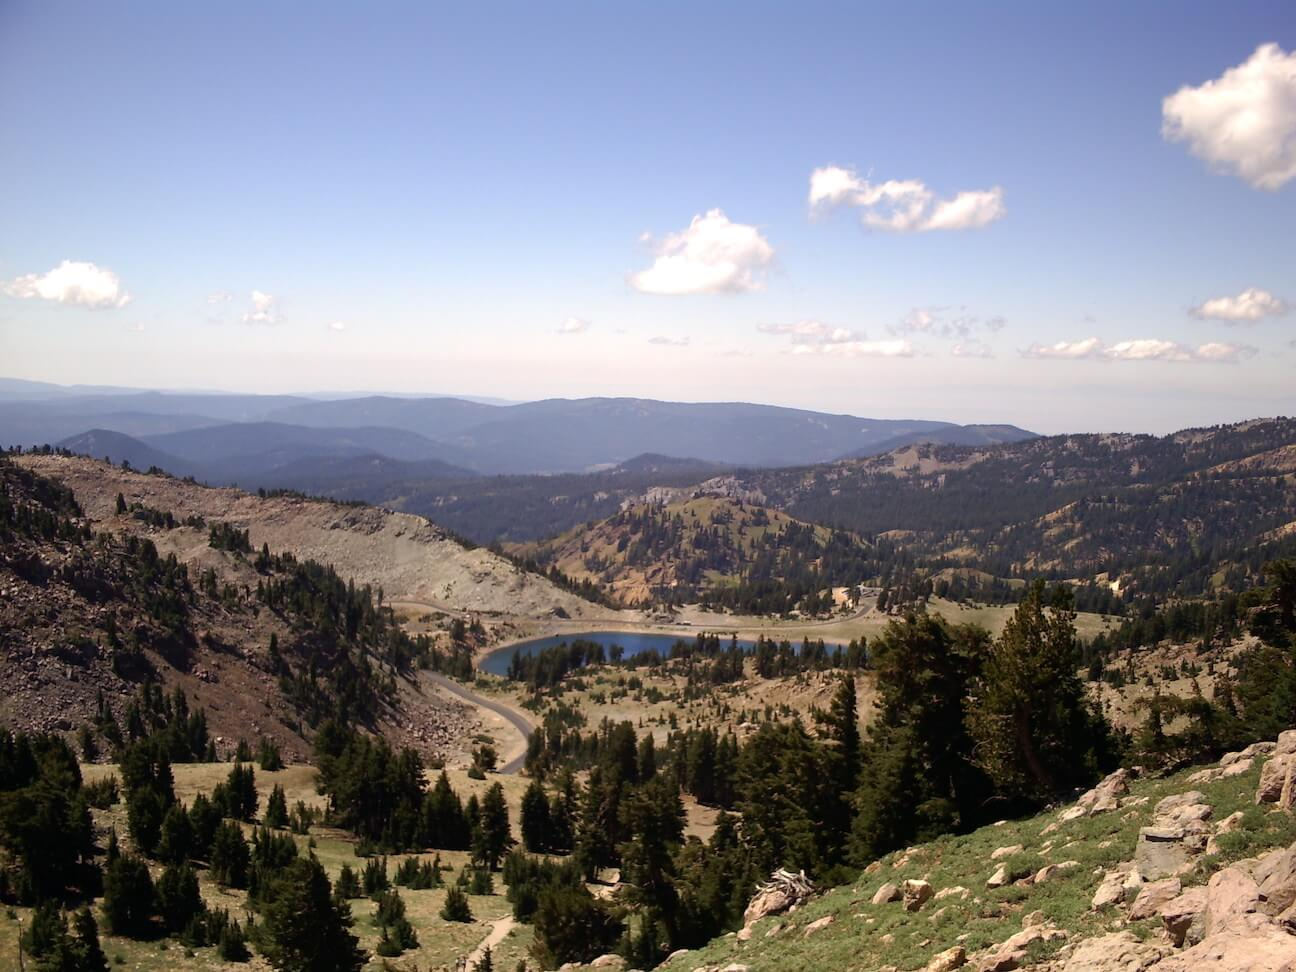 A view from the Lassen Peak trail, photo courtesy Laura Power.